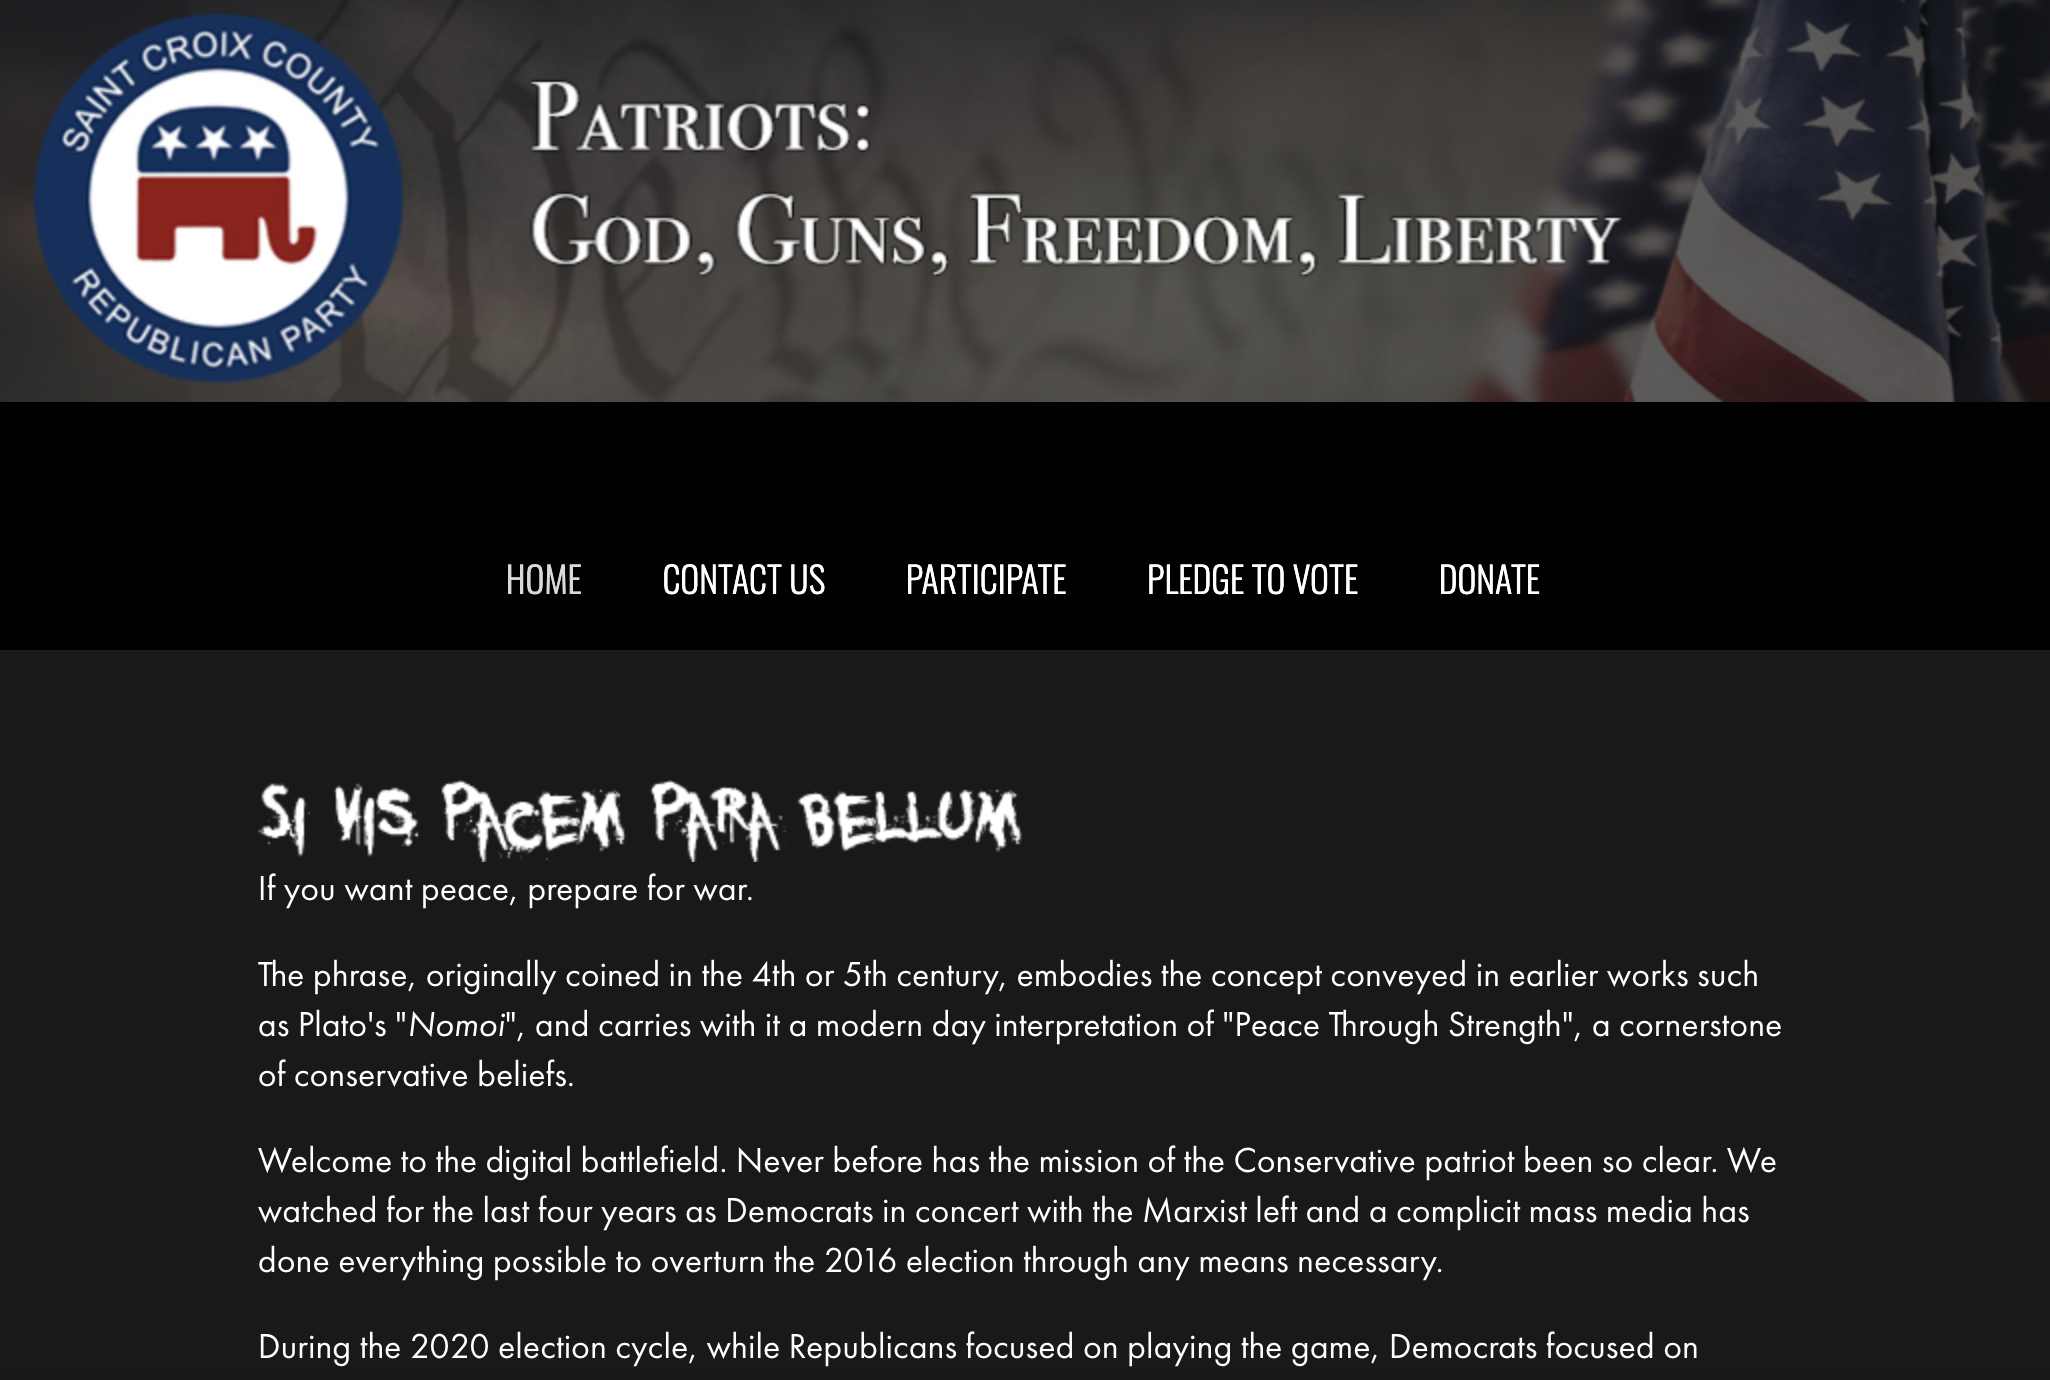 A screen capture shows the home page of the St. Croix County Republican website with the